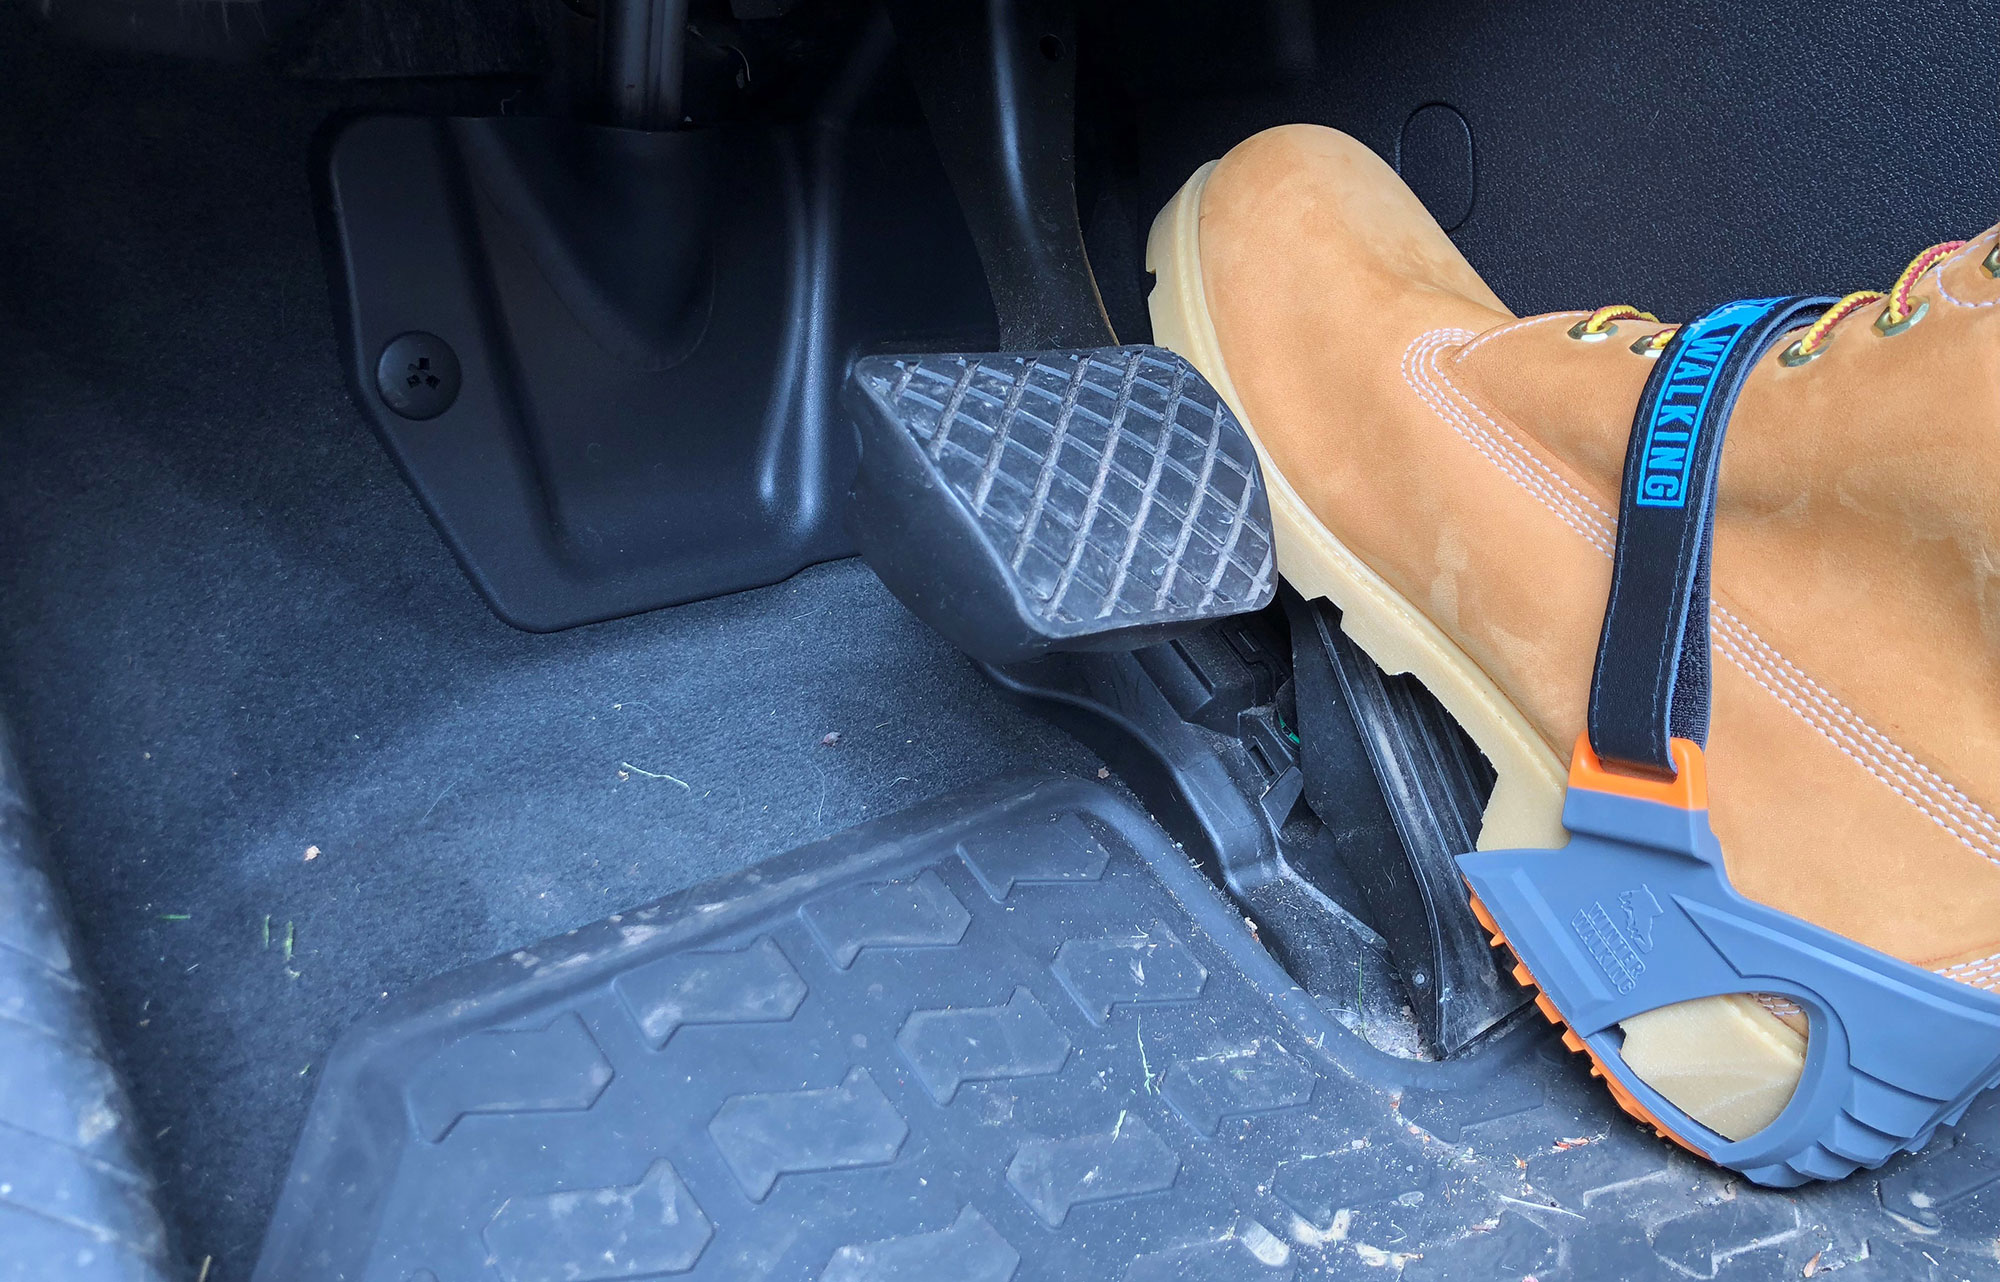 Ice cleats that you can wear while driving